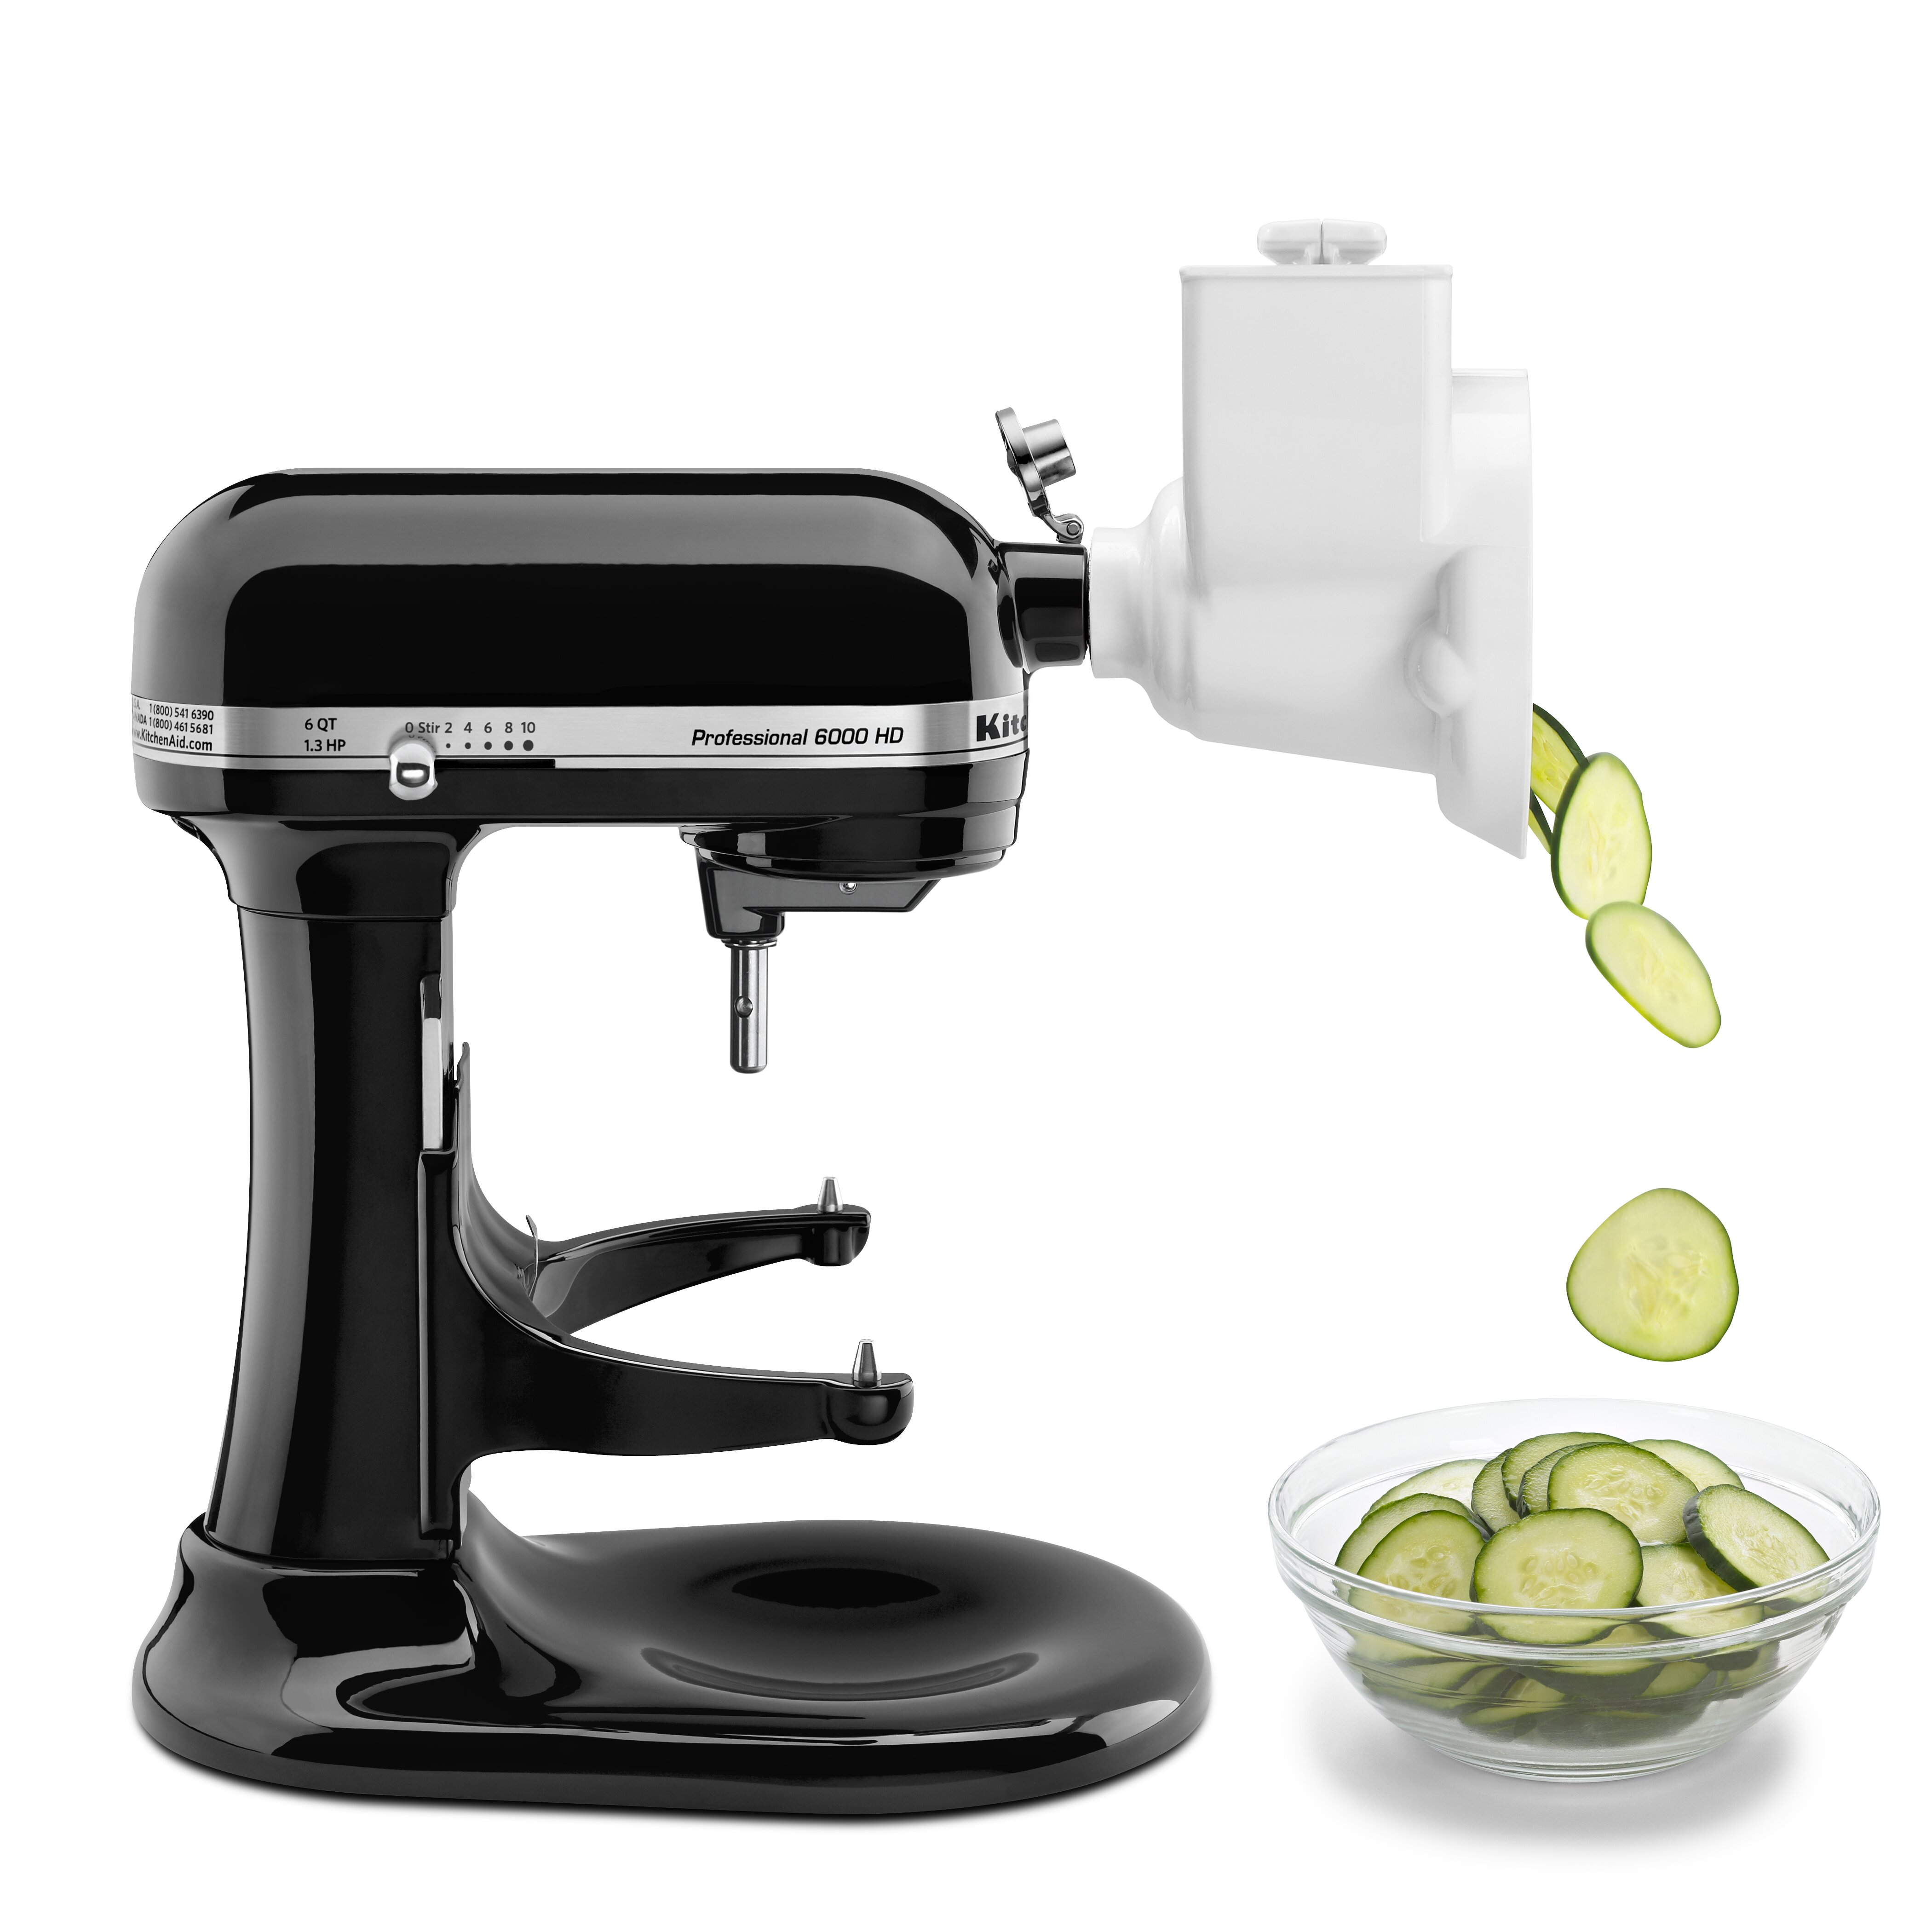 kitchenaid stand mixer attachments reviews kitchenaid slicer/shredder parts kitchenaid slicer attachment kit